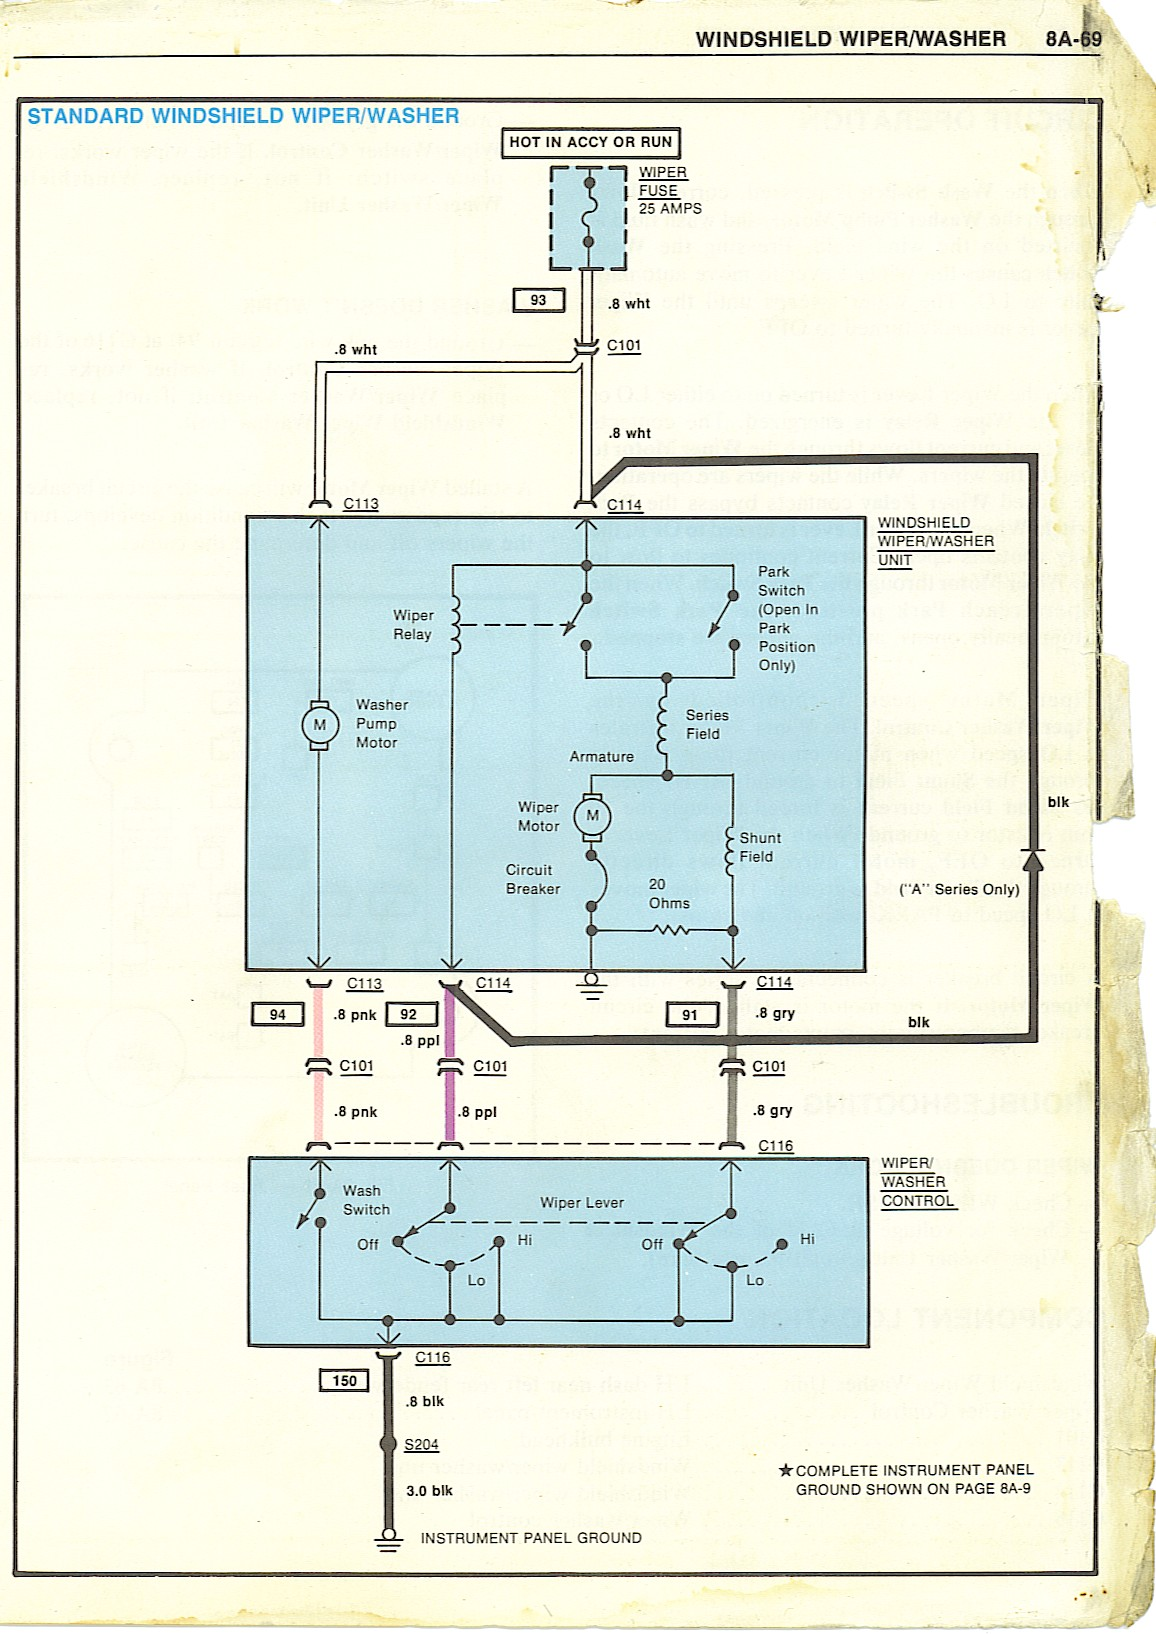 Ram Power Window Wiring Diagram Get Free Image About Wiring Diagram